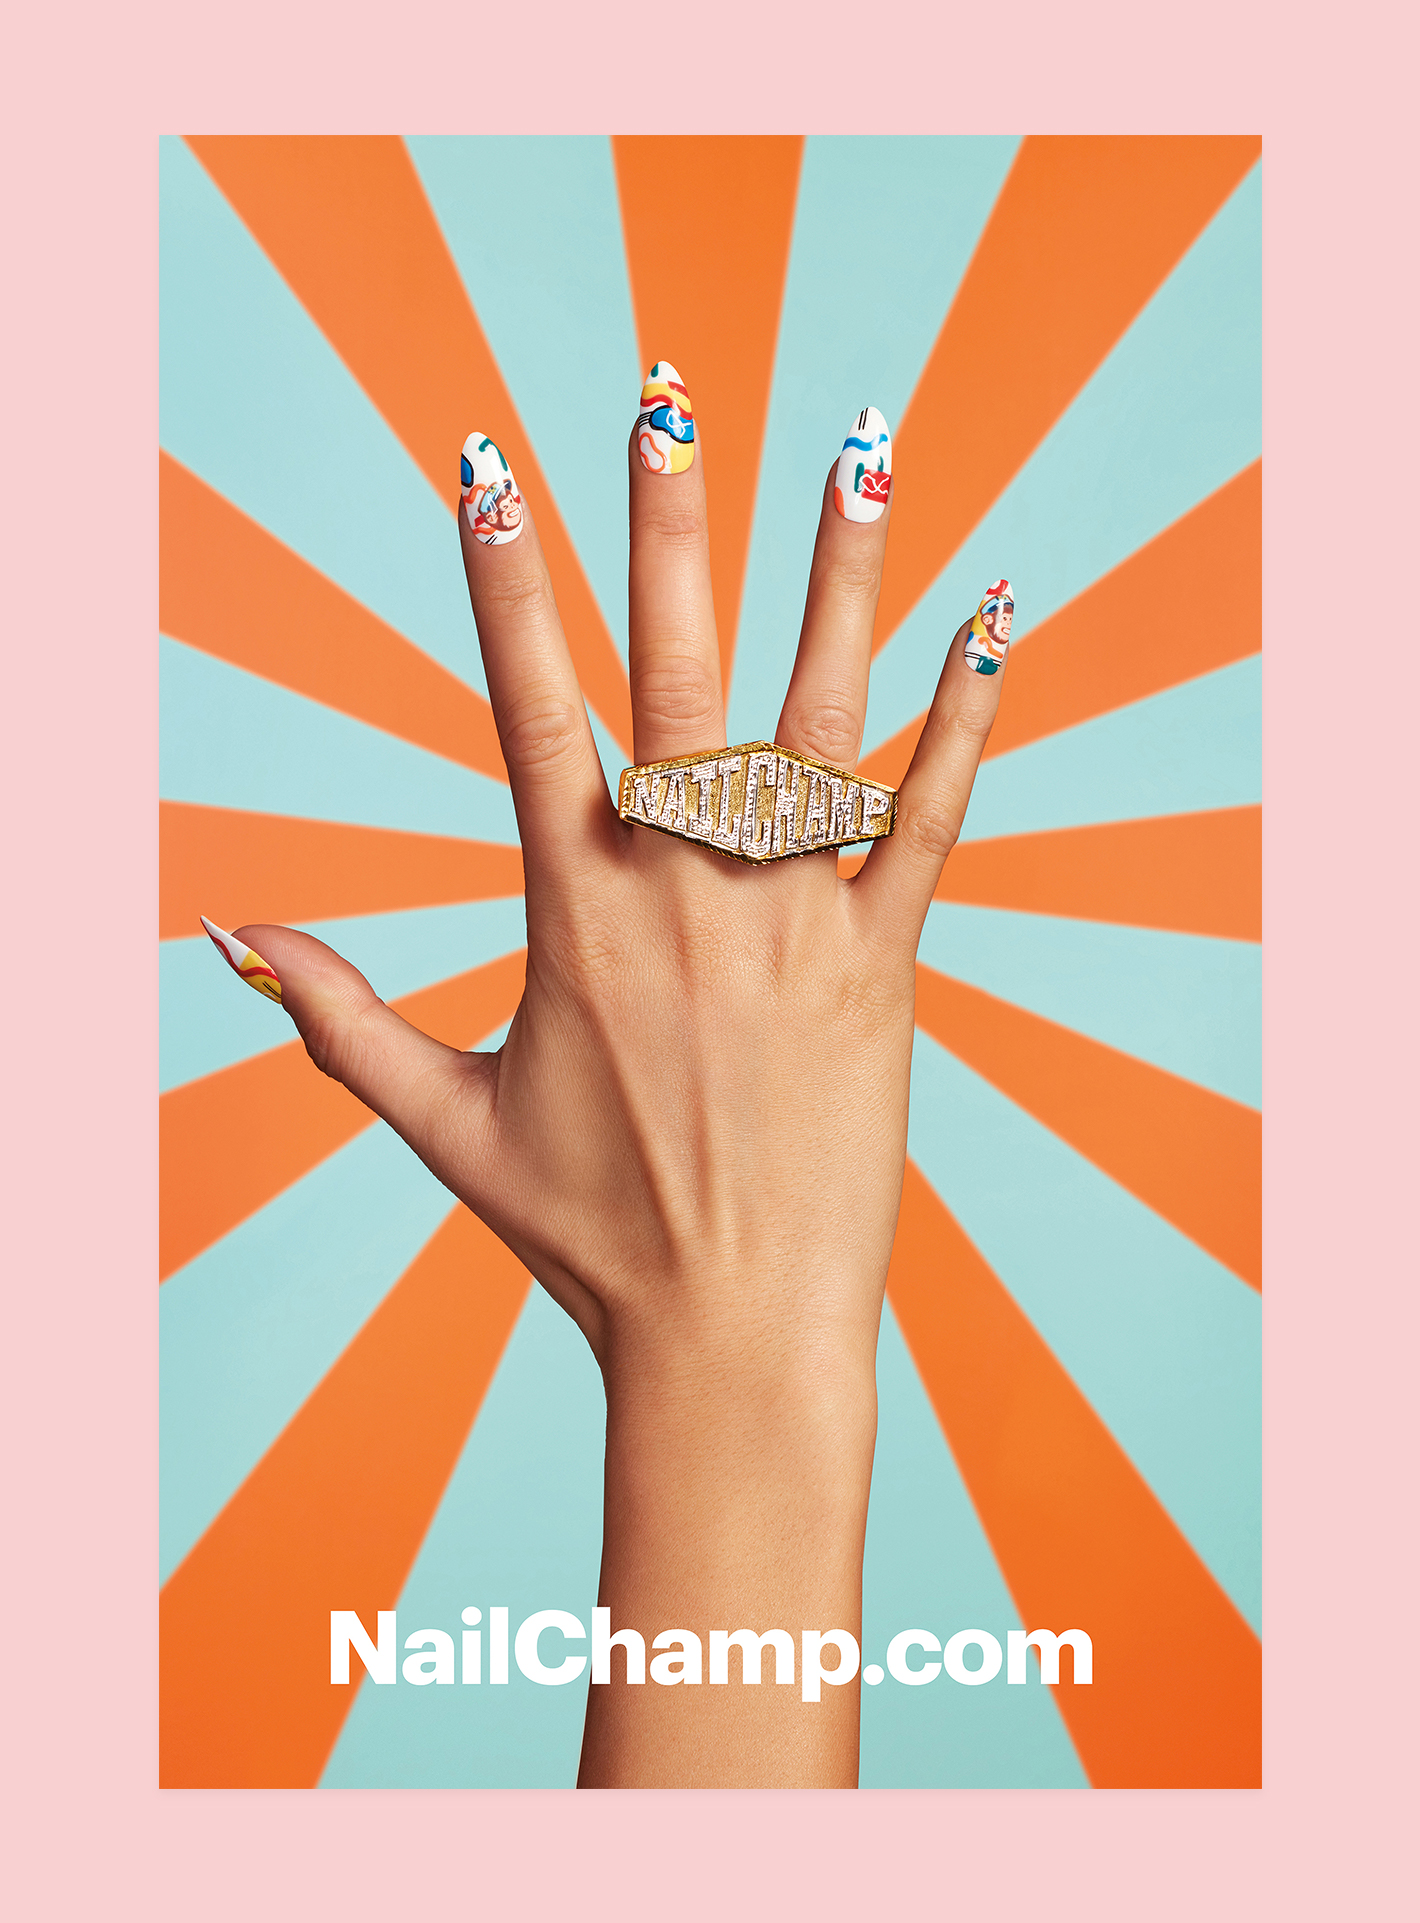 NailChamp-Poster